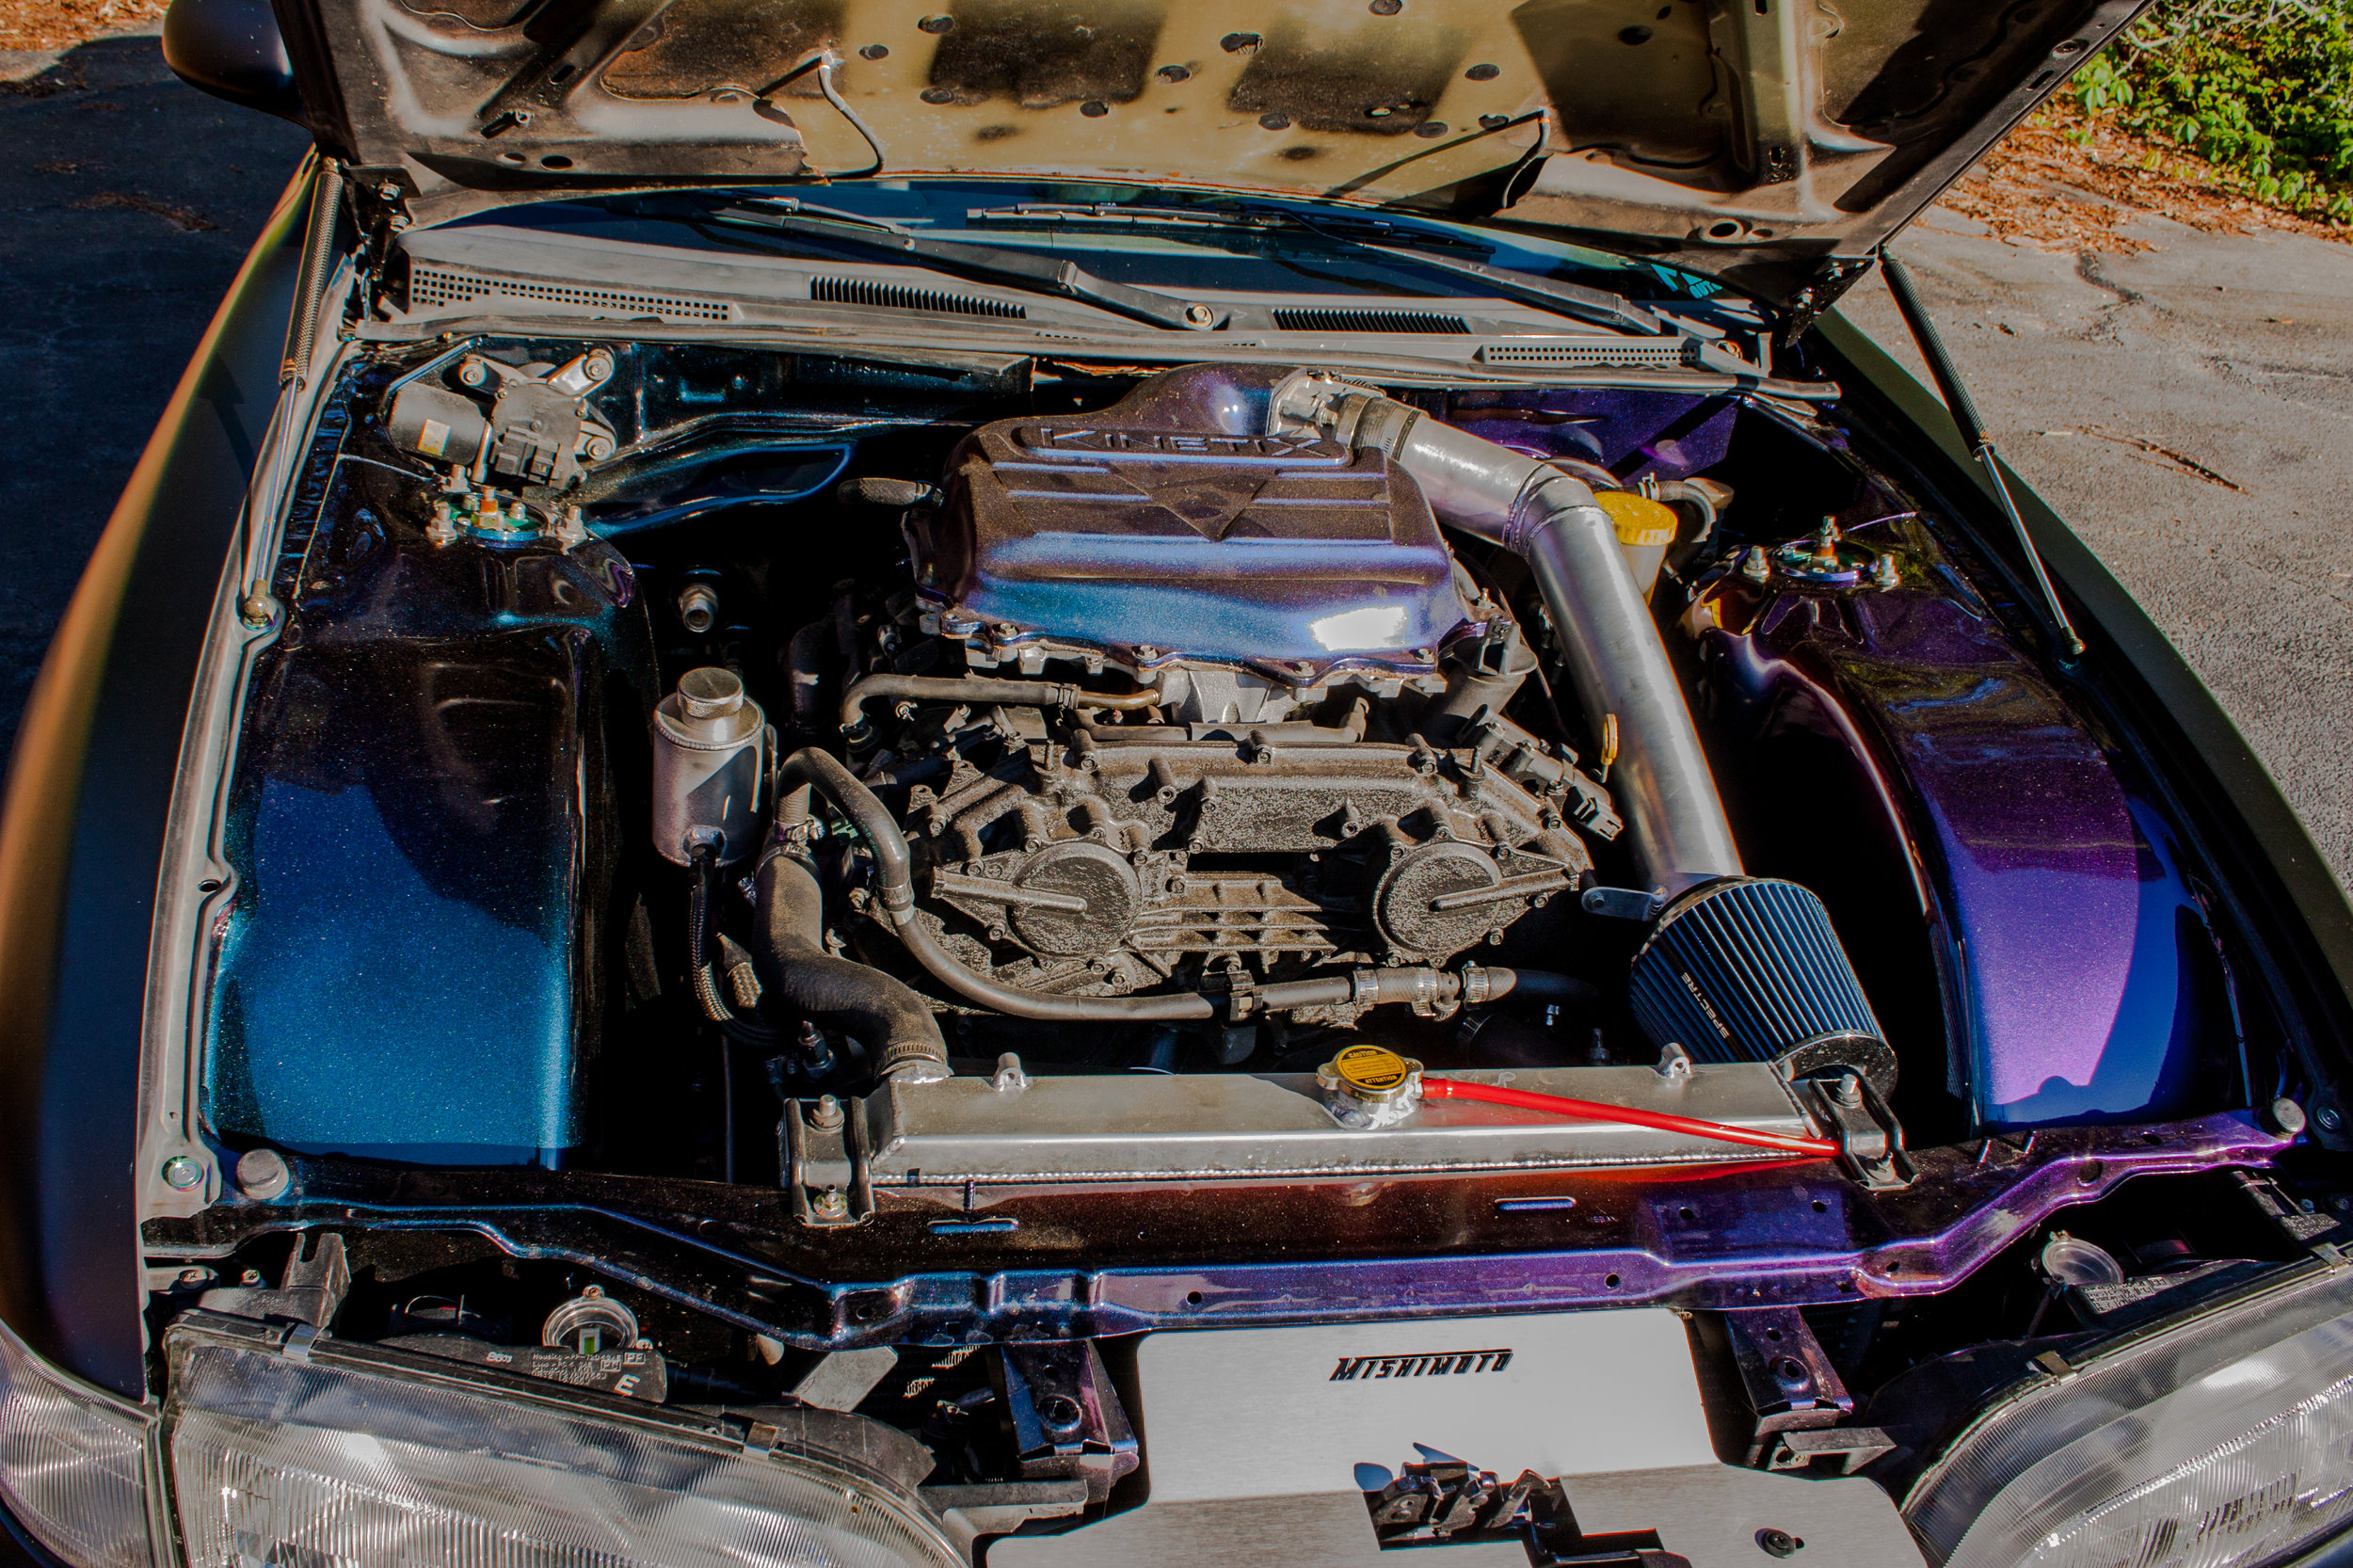 VQ Swapped 94 240SX - …one of the first completed cars that rolled out of our shop doors, this VQ swapped S14 drove thousands of miles, hitting many car shows on the south east coast, and up to Virginia.